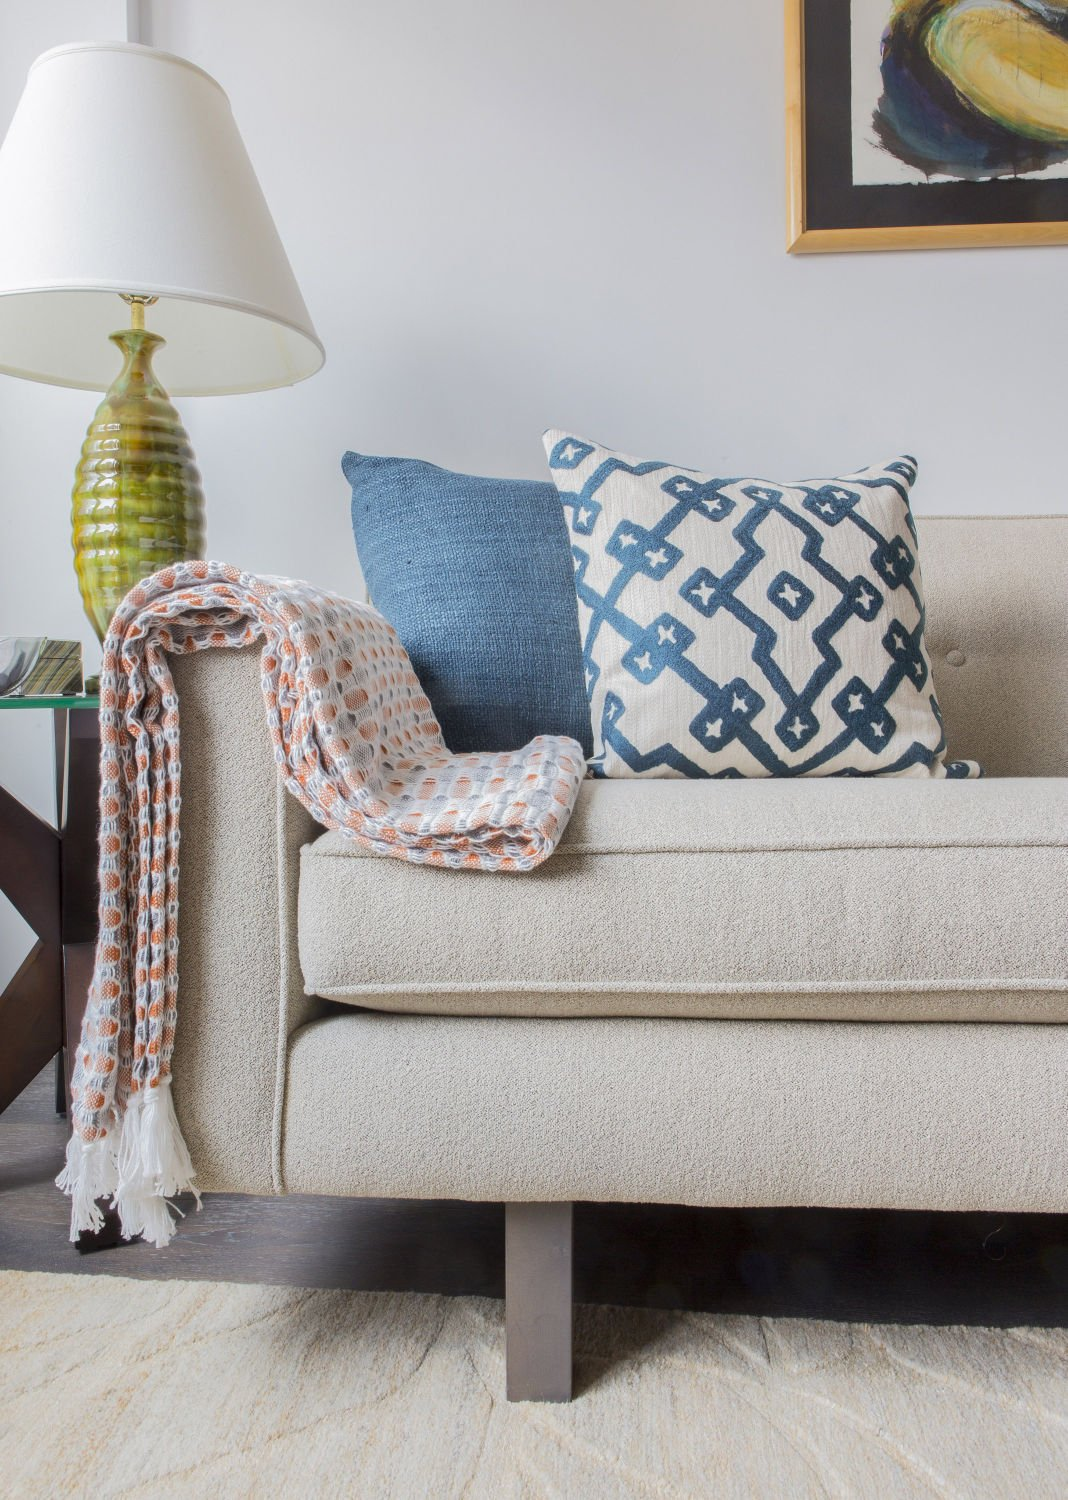 It\'s a wrap: decorating with throws and blankets | Lifestyle ...